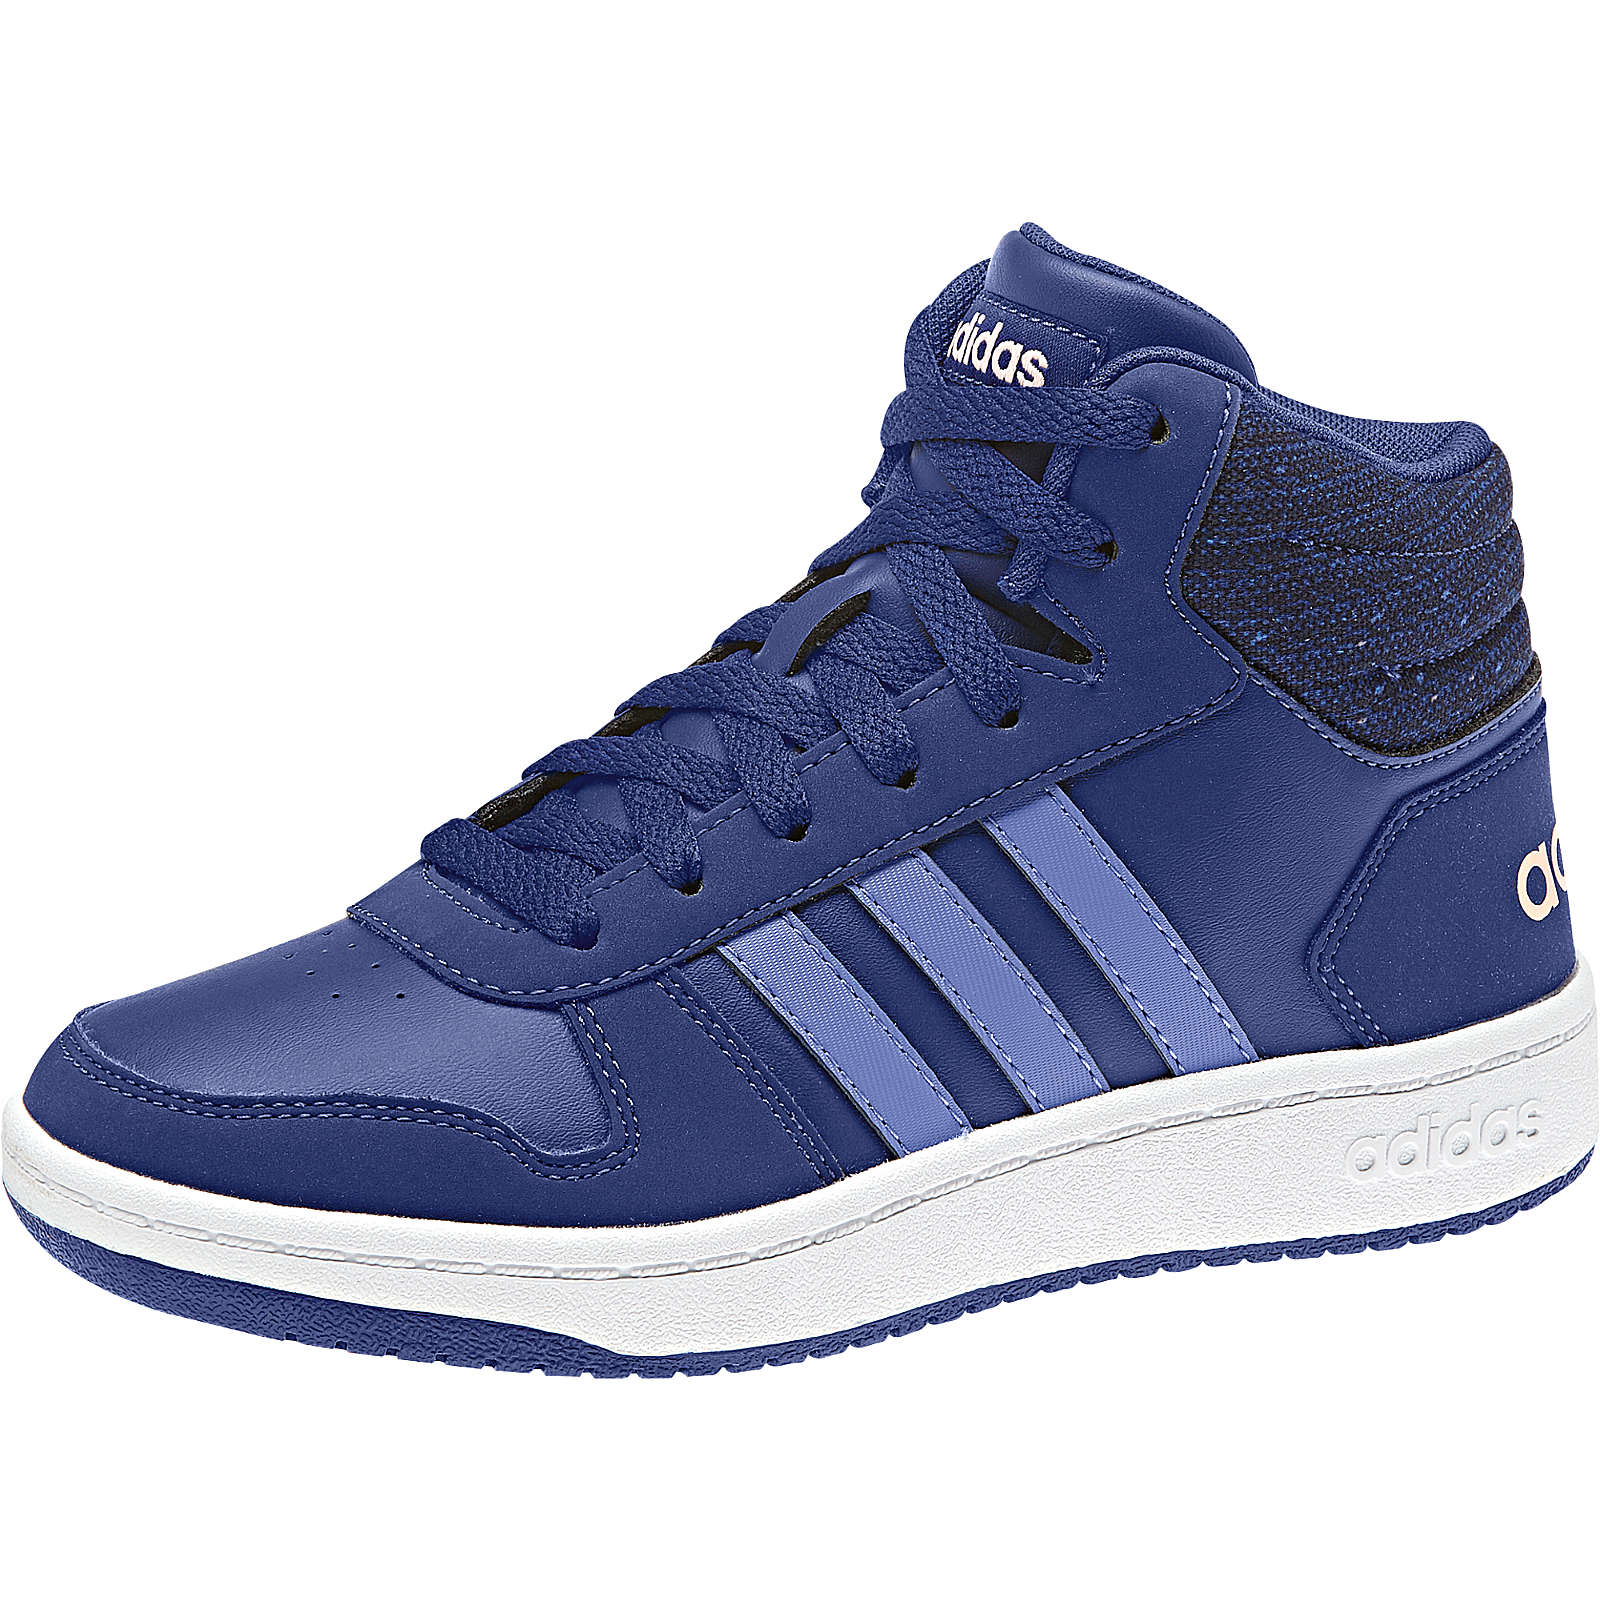 adidas Sport Inspired Kinder Sneakers High HOOPS MID 2.0 blau Gr. 32